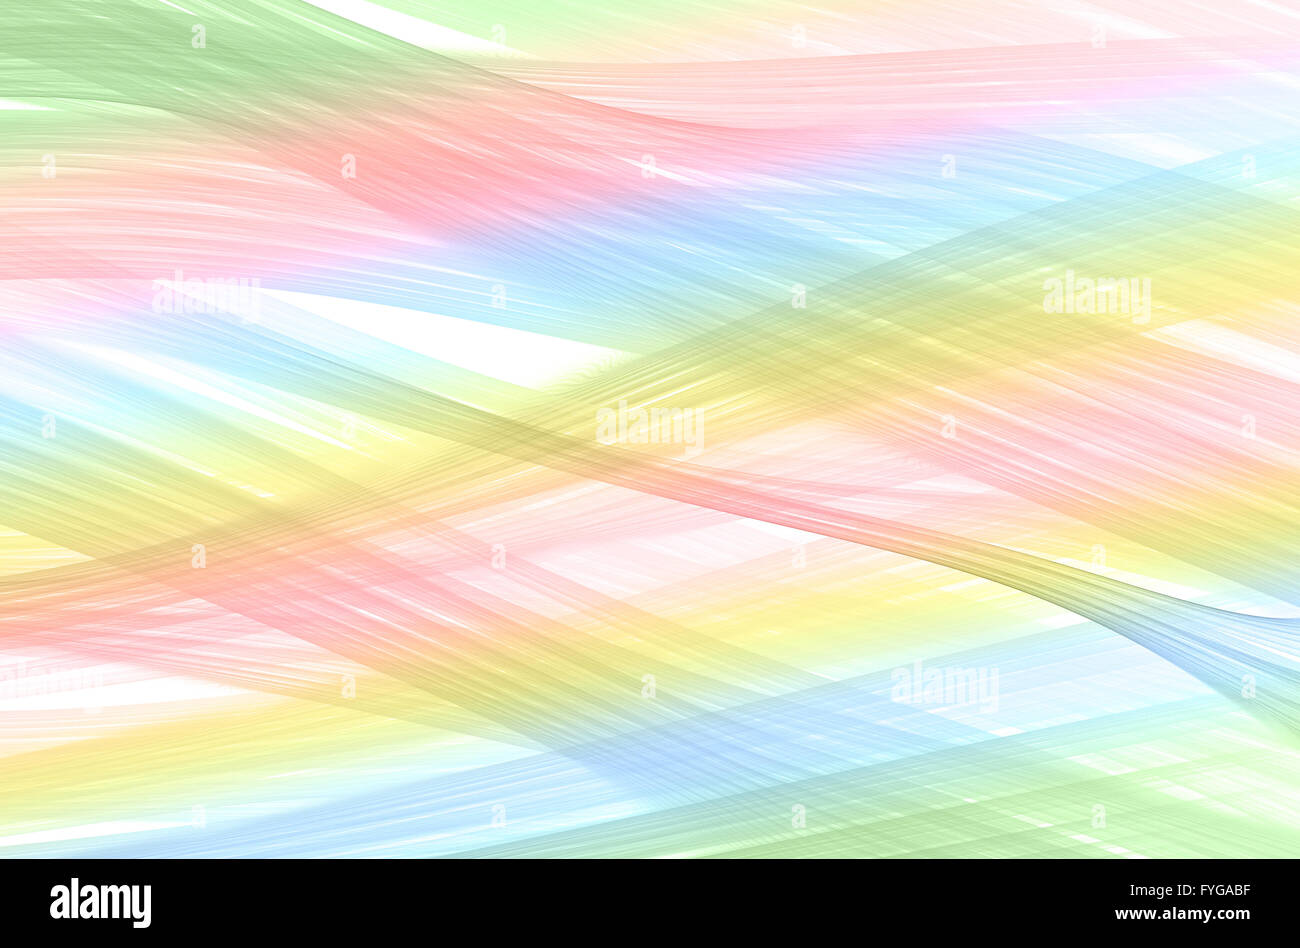 Light Color Texture Abstract Pastel Colorful Background